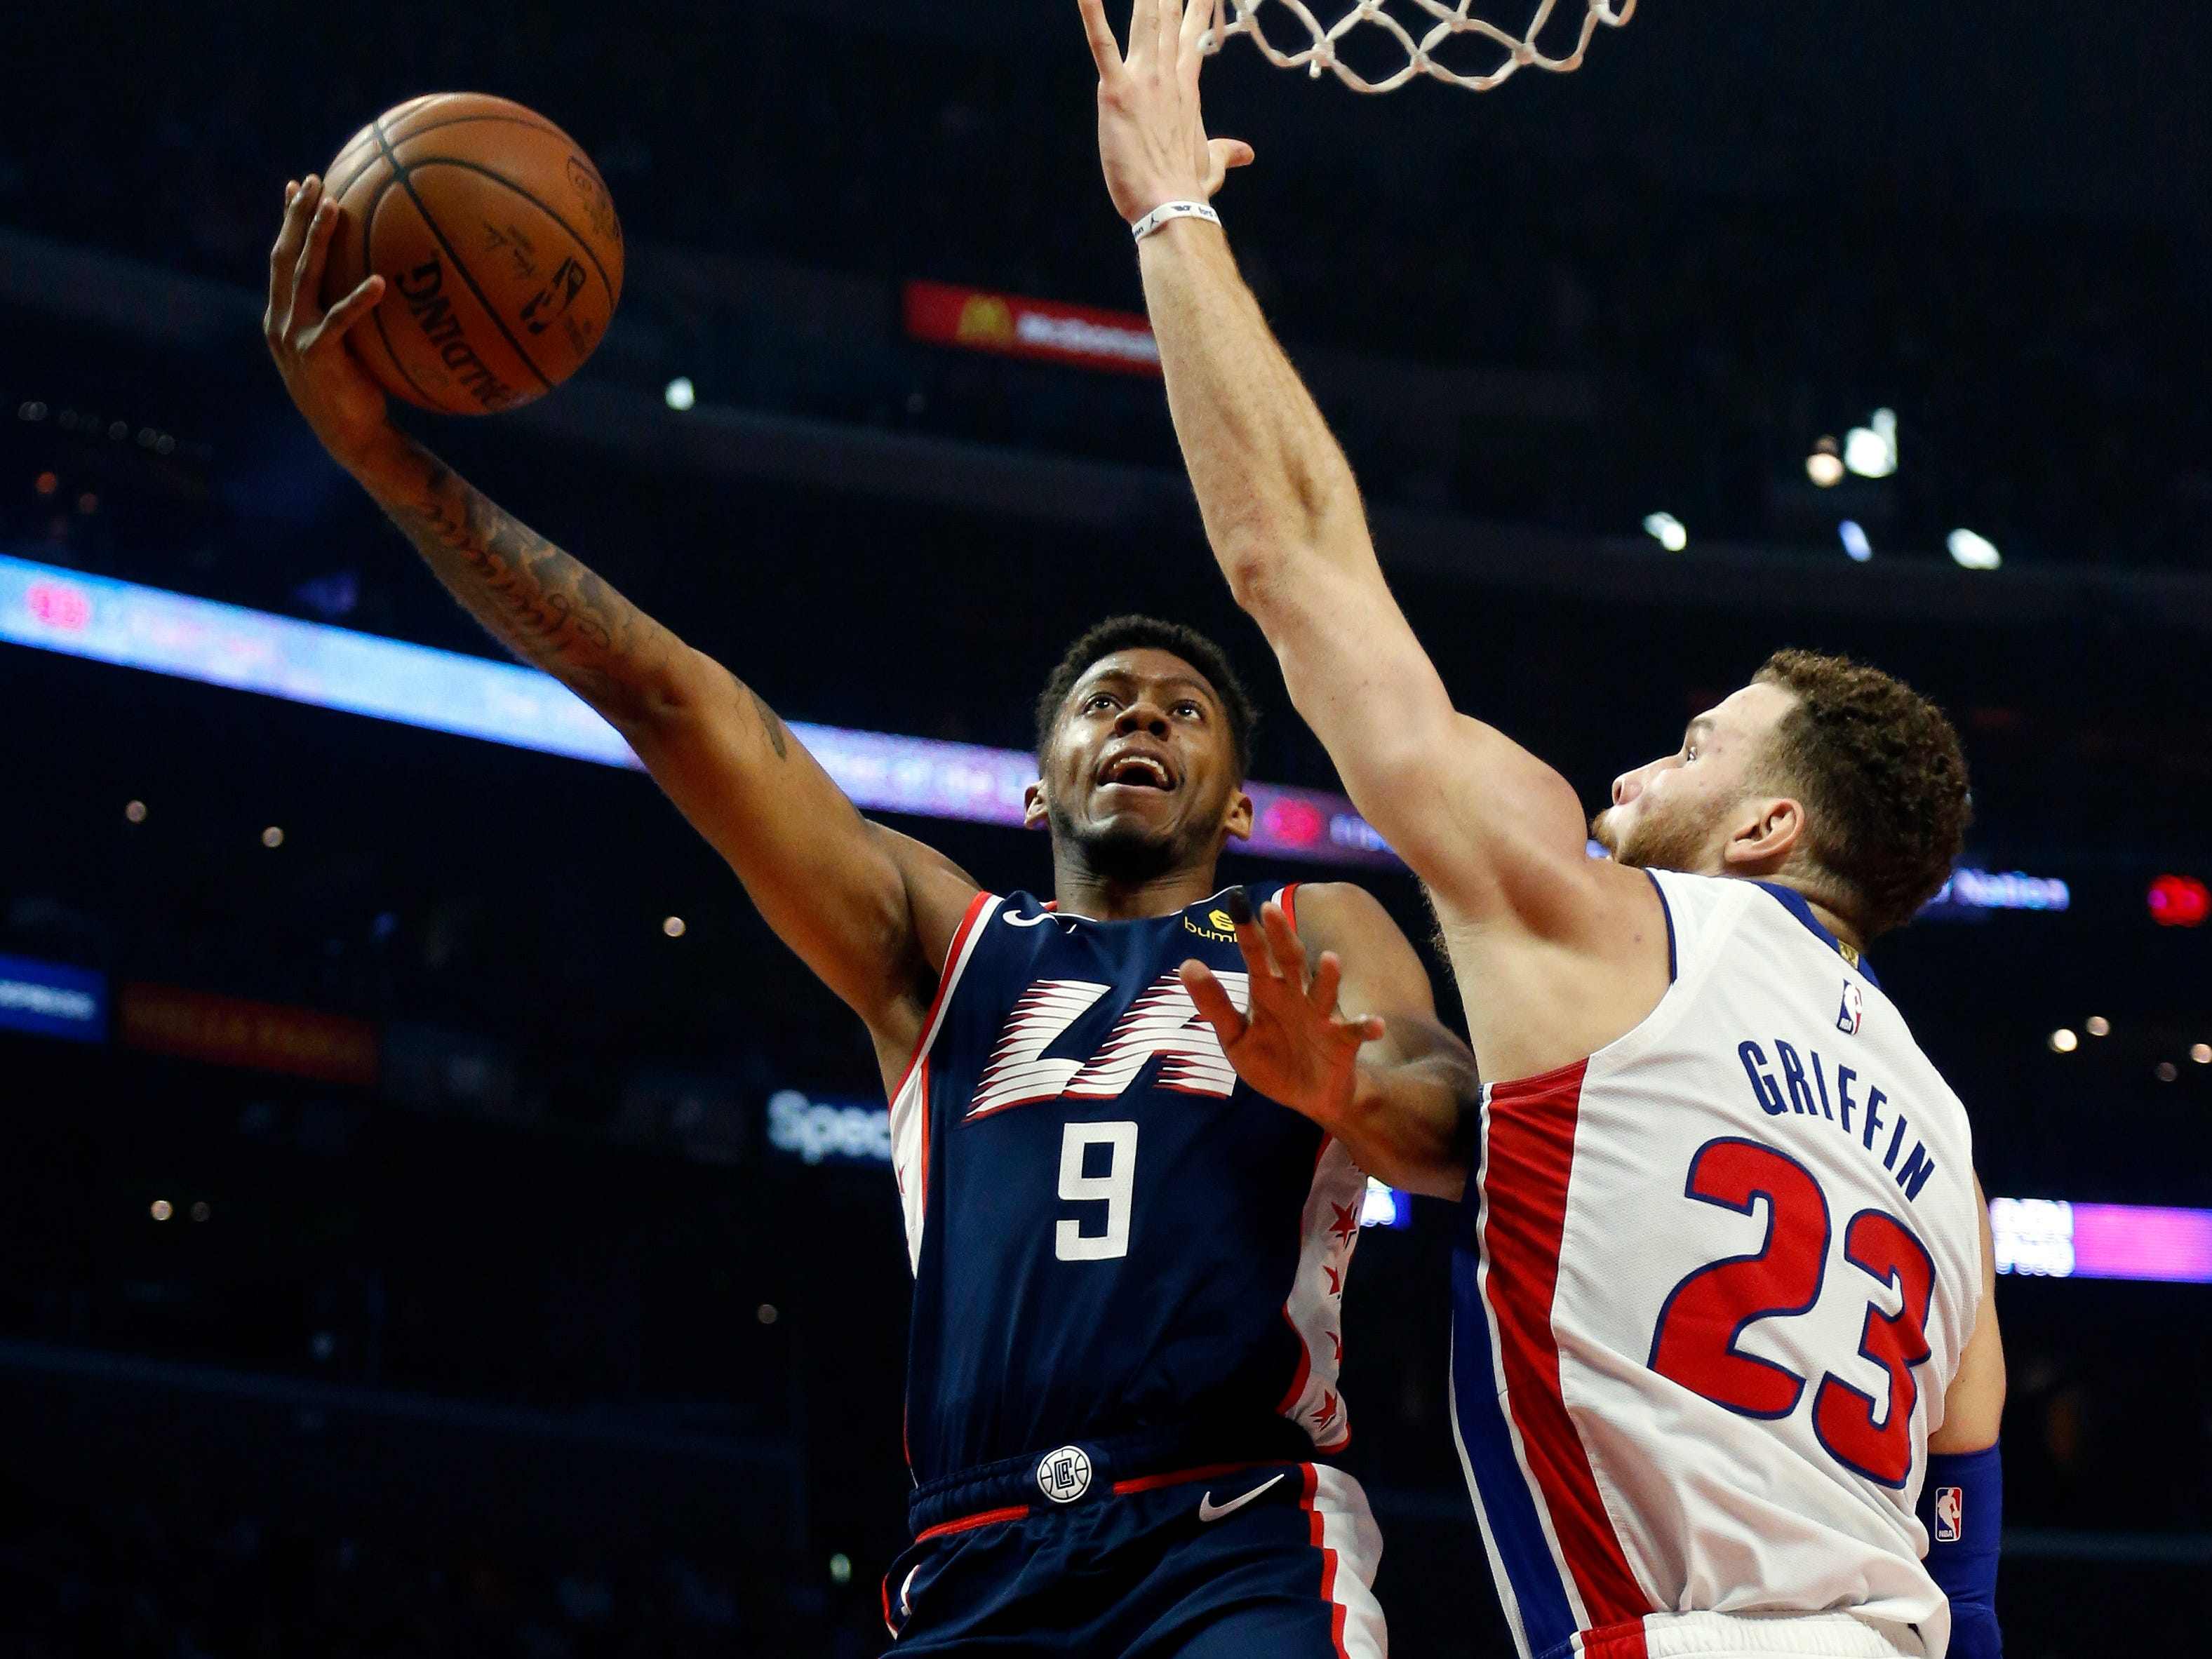 Los Angeles Clippers' Tyrone Wallace shoots against Detroit Pistons' Blake Griffin during the first half Saturday, Jan. 12, 2019, in Los Angeles.